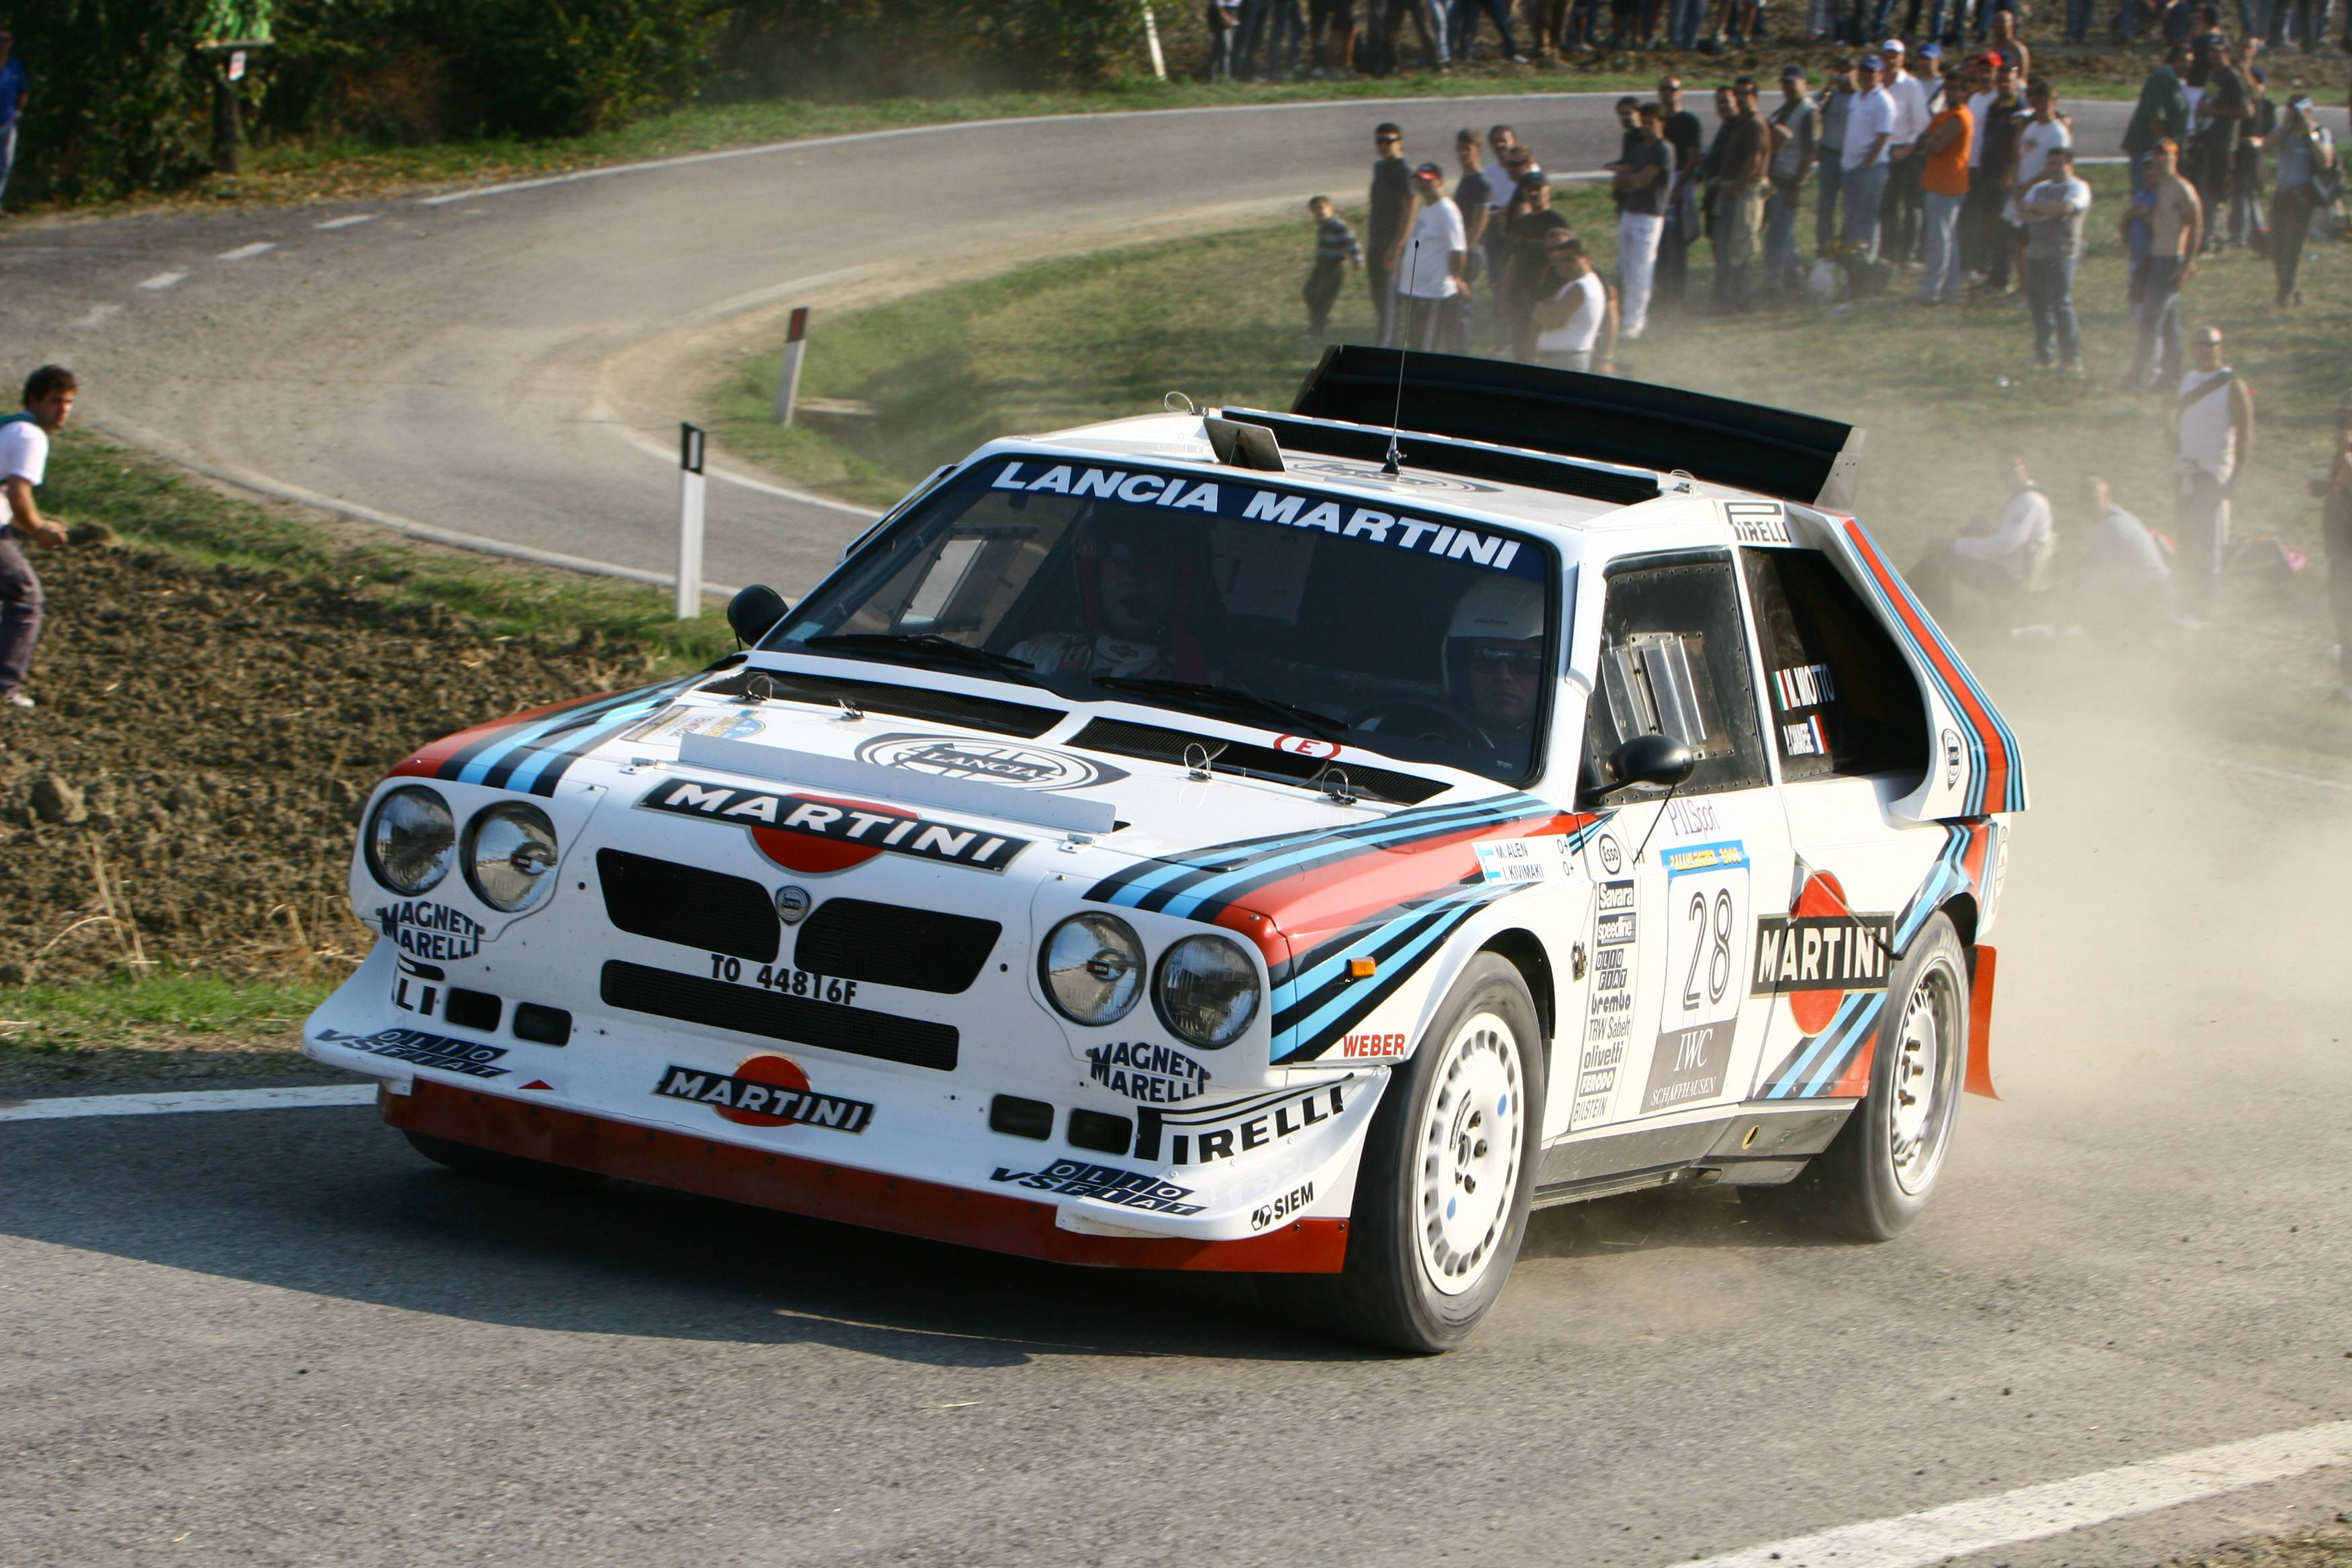 Lancia Delta S4 High Quality Background on Wallpapers Vista